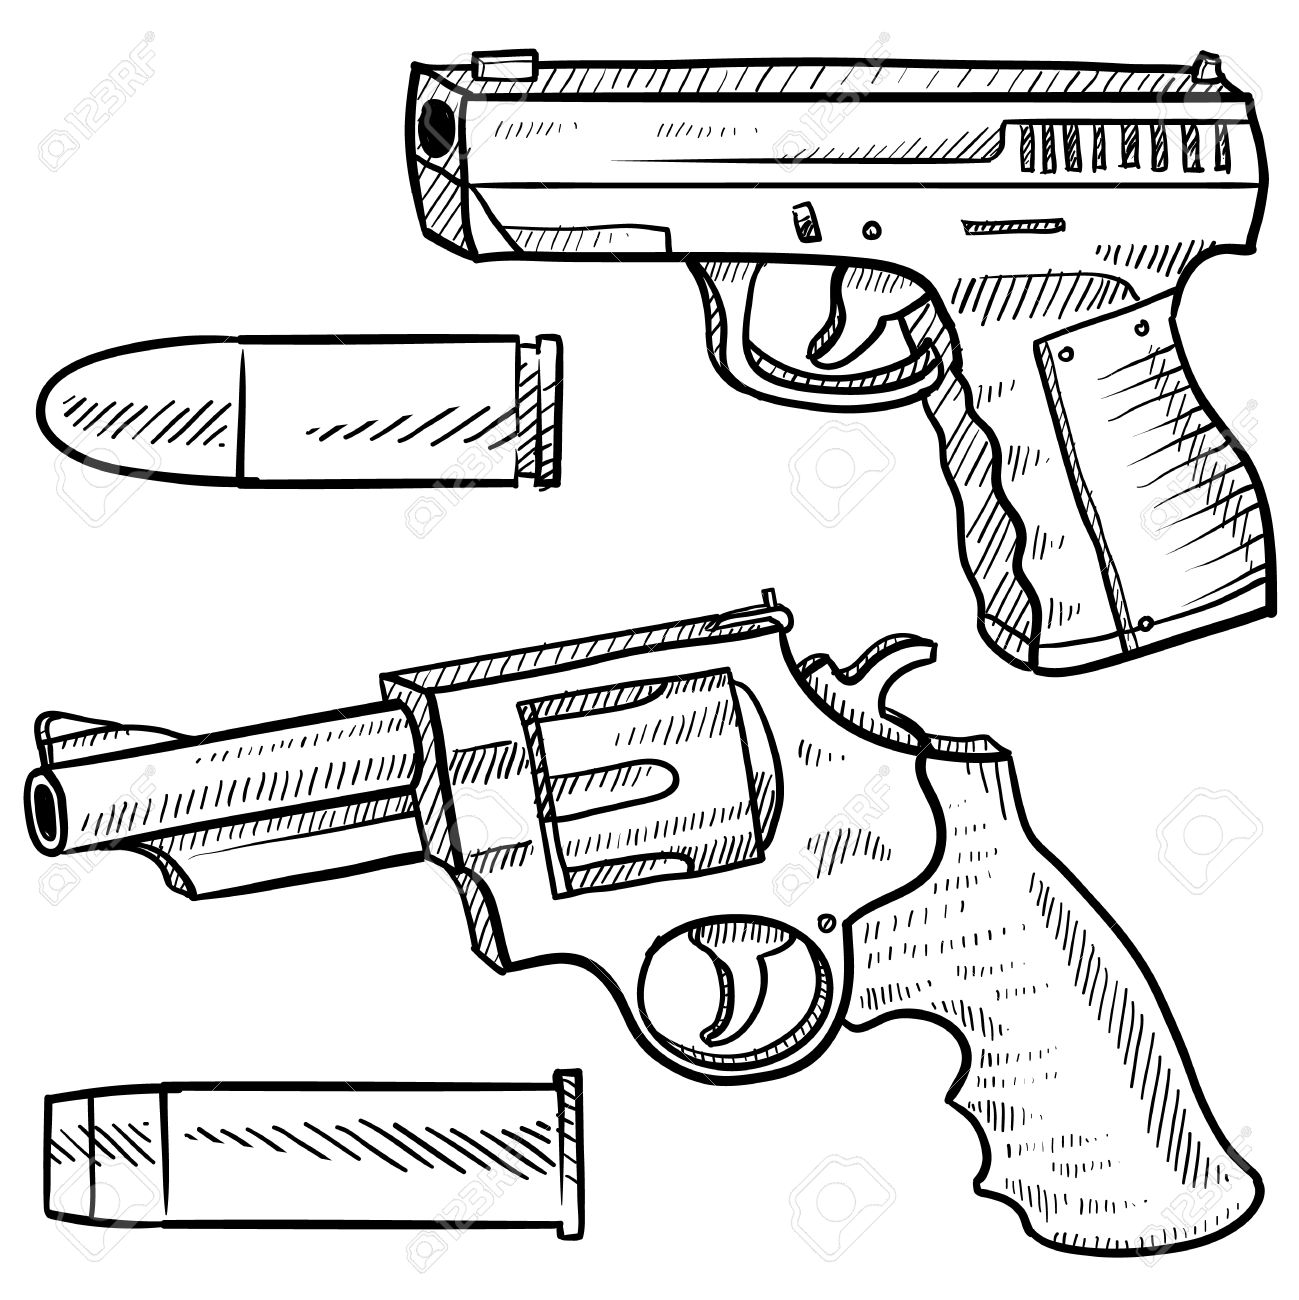 1299x1300 Doodle Style Pistol Or Handgun Sketch Including An Automatic